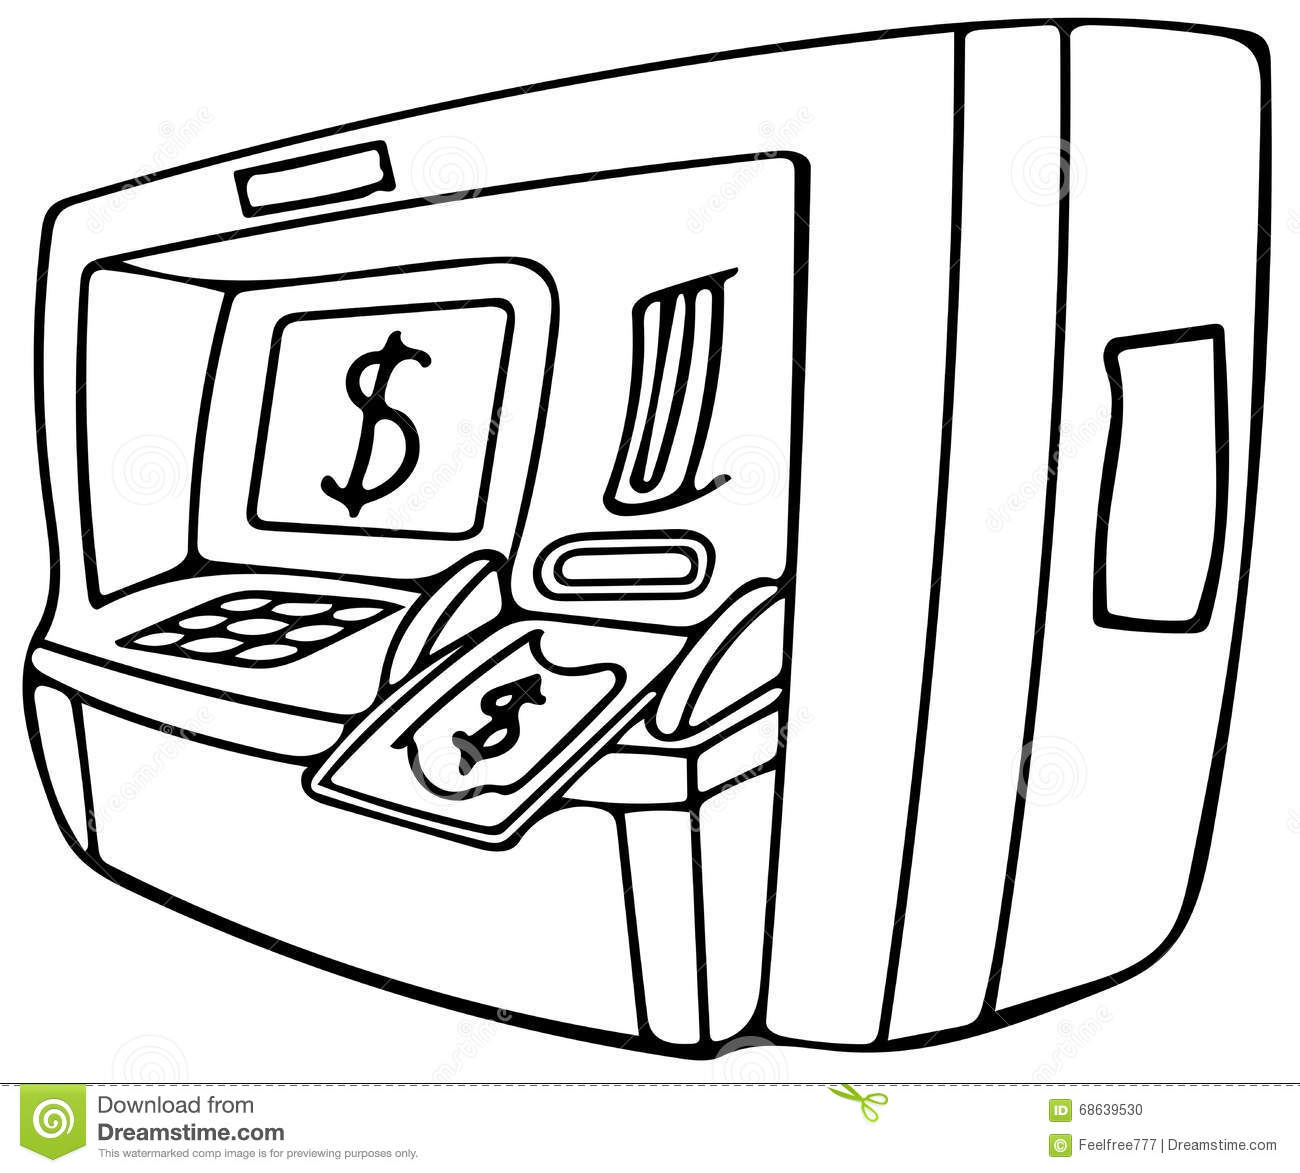 top coloring pages of money gallery images dashah beauty